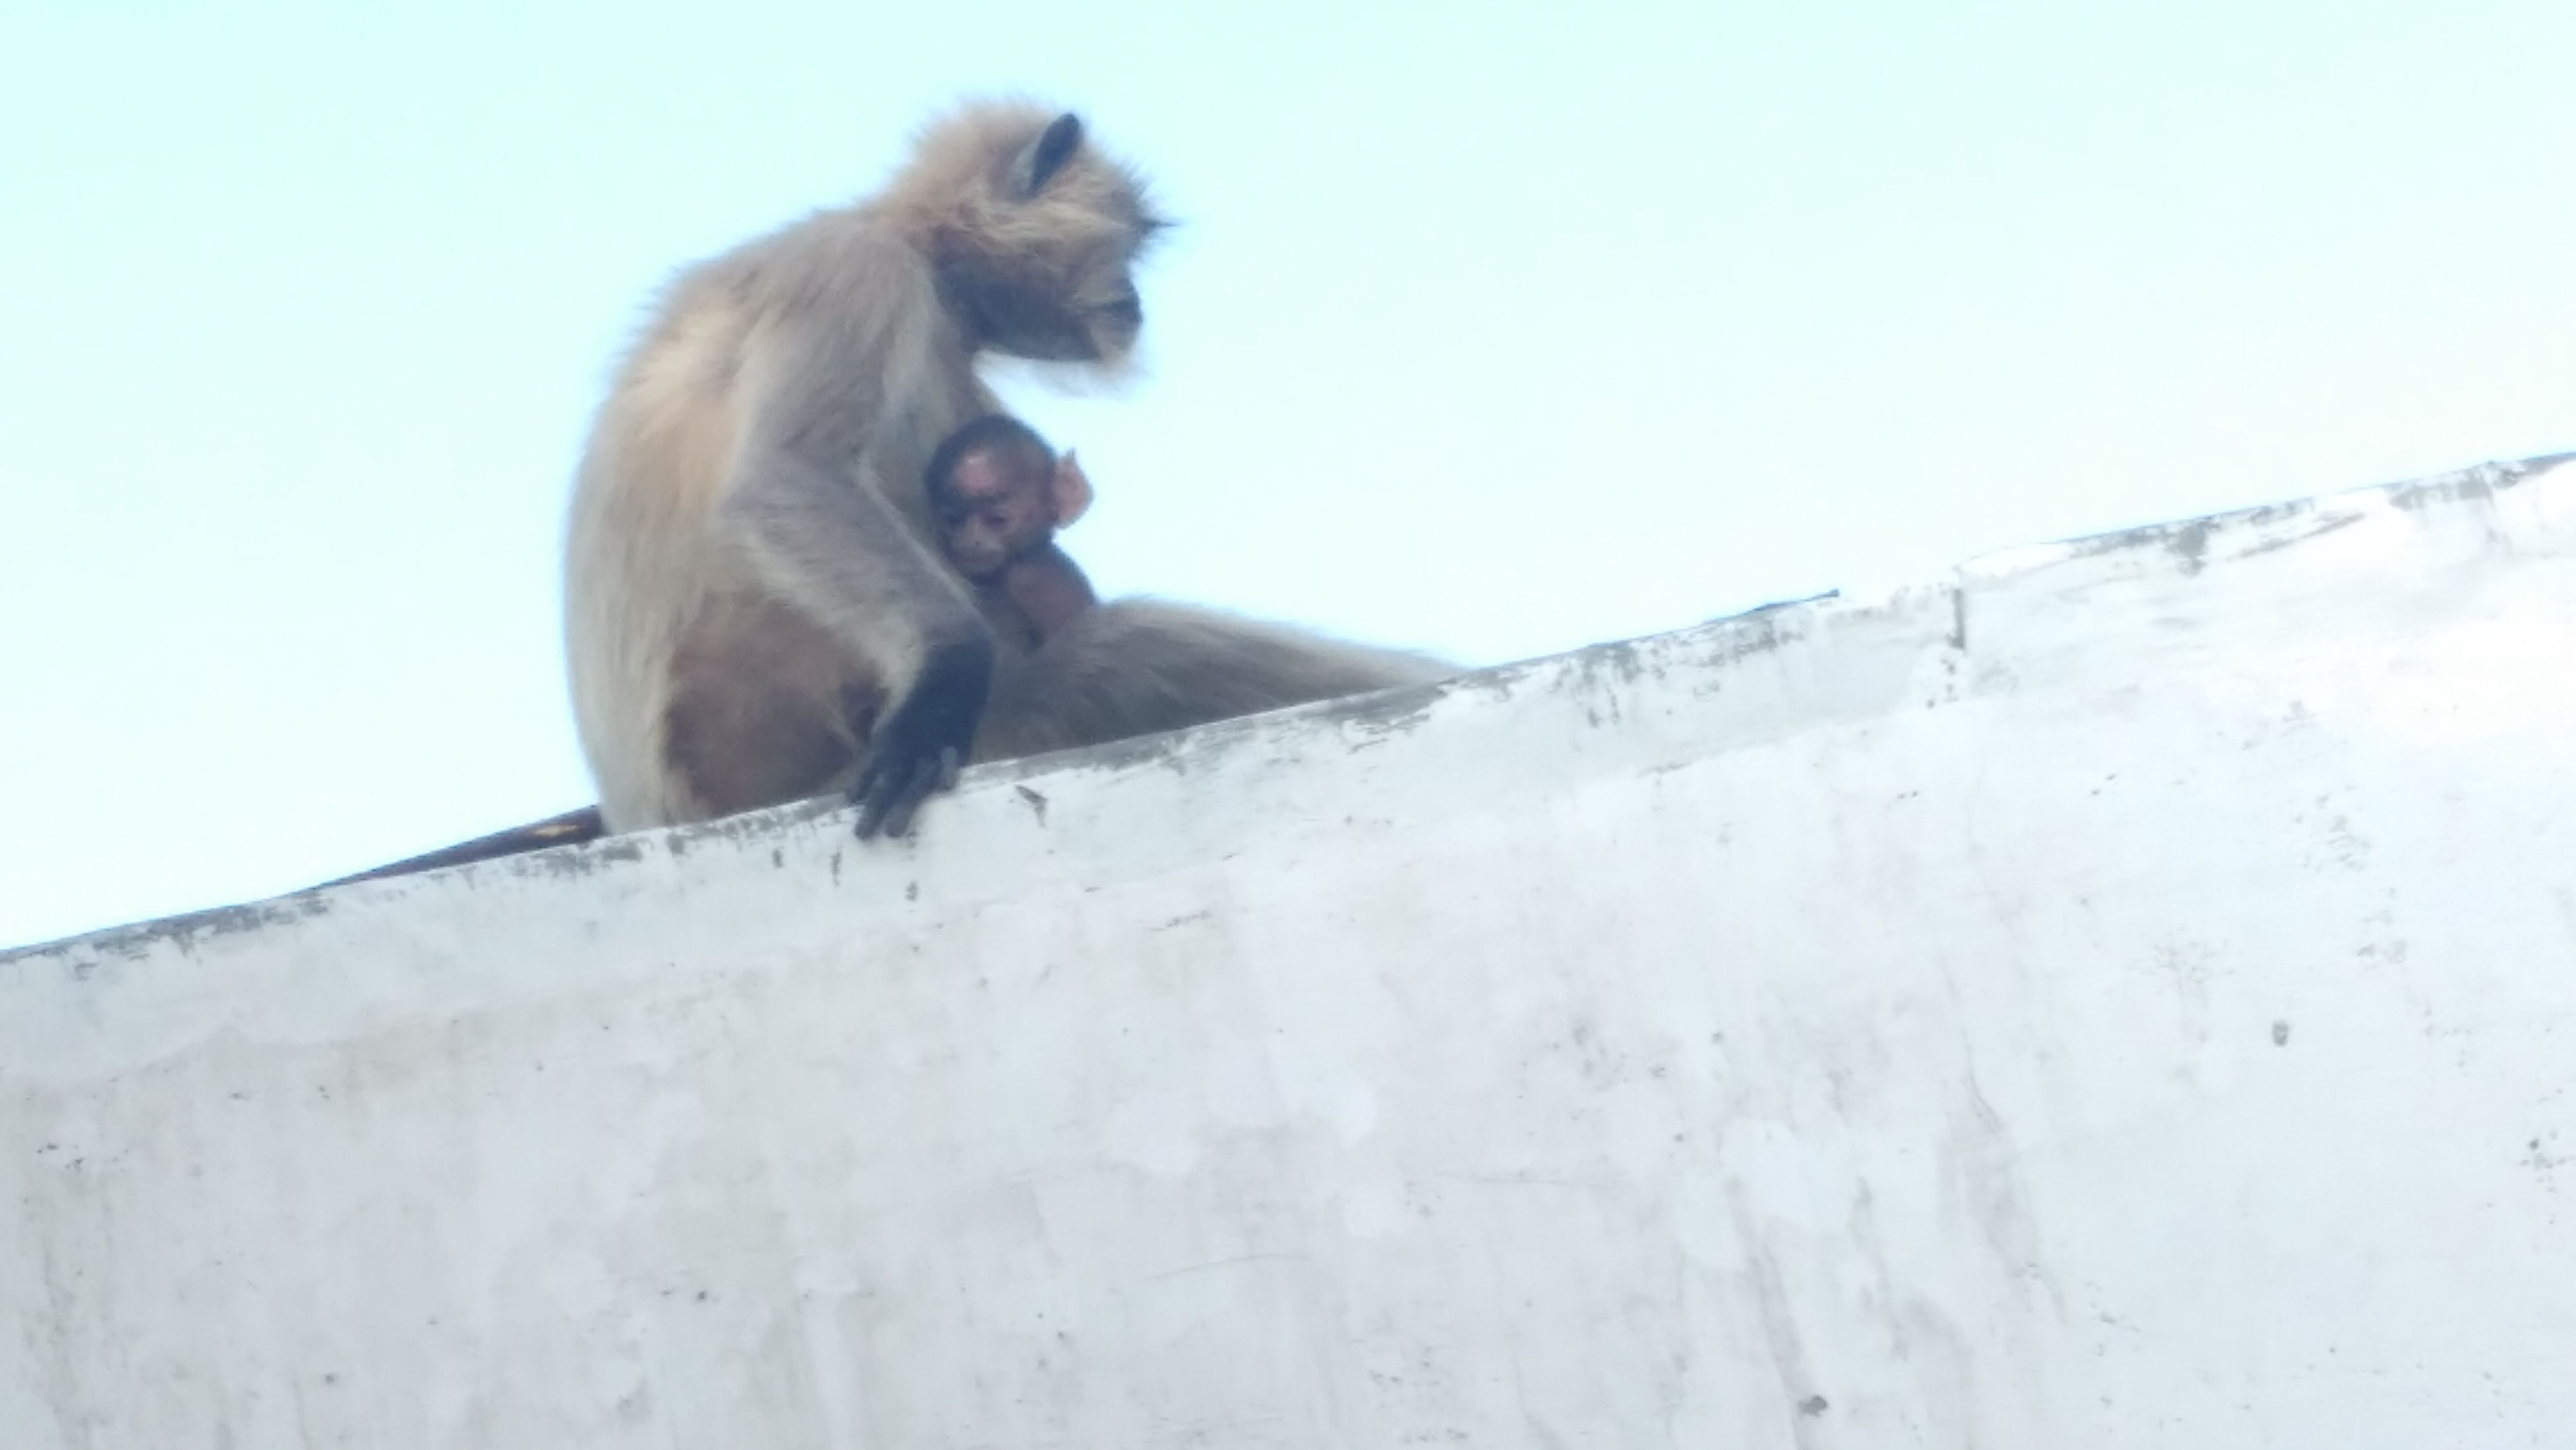 mammal, animal themes, monkey, animals in the wild, low angle view, primate, no people, one animal, day, built structure, retaining wall, outdoors, architecture, sky, nature, baboon